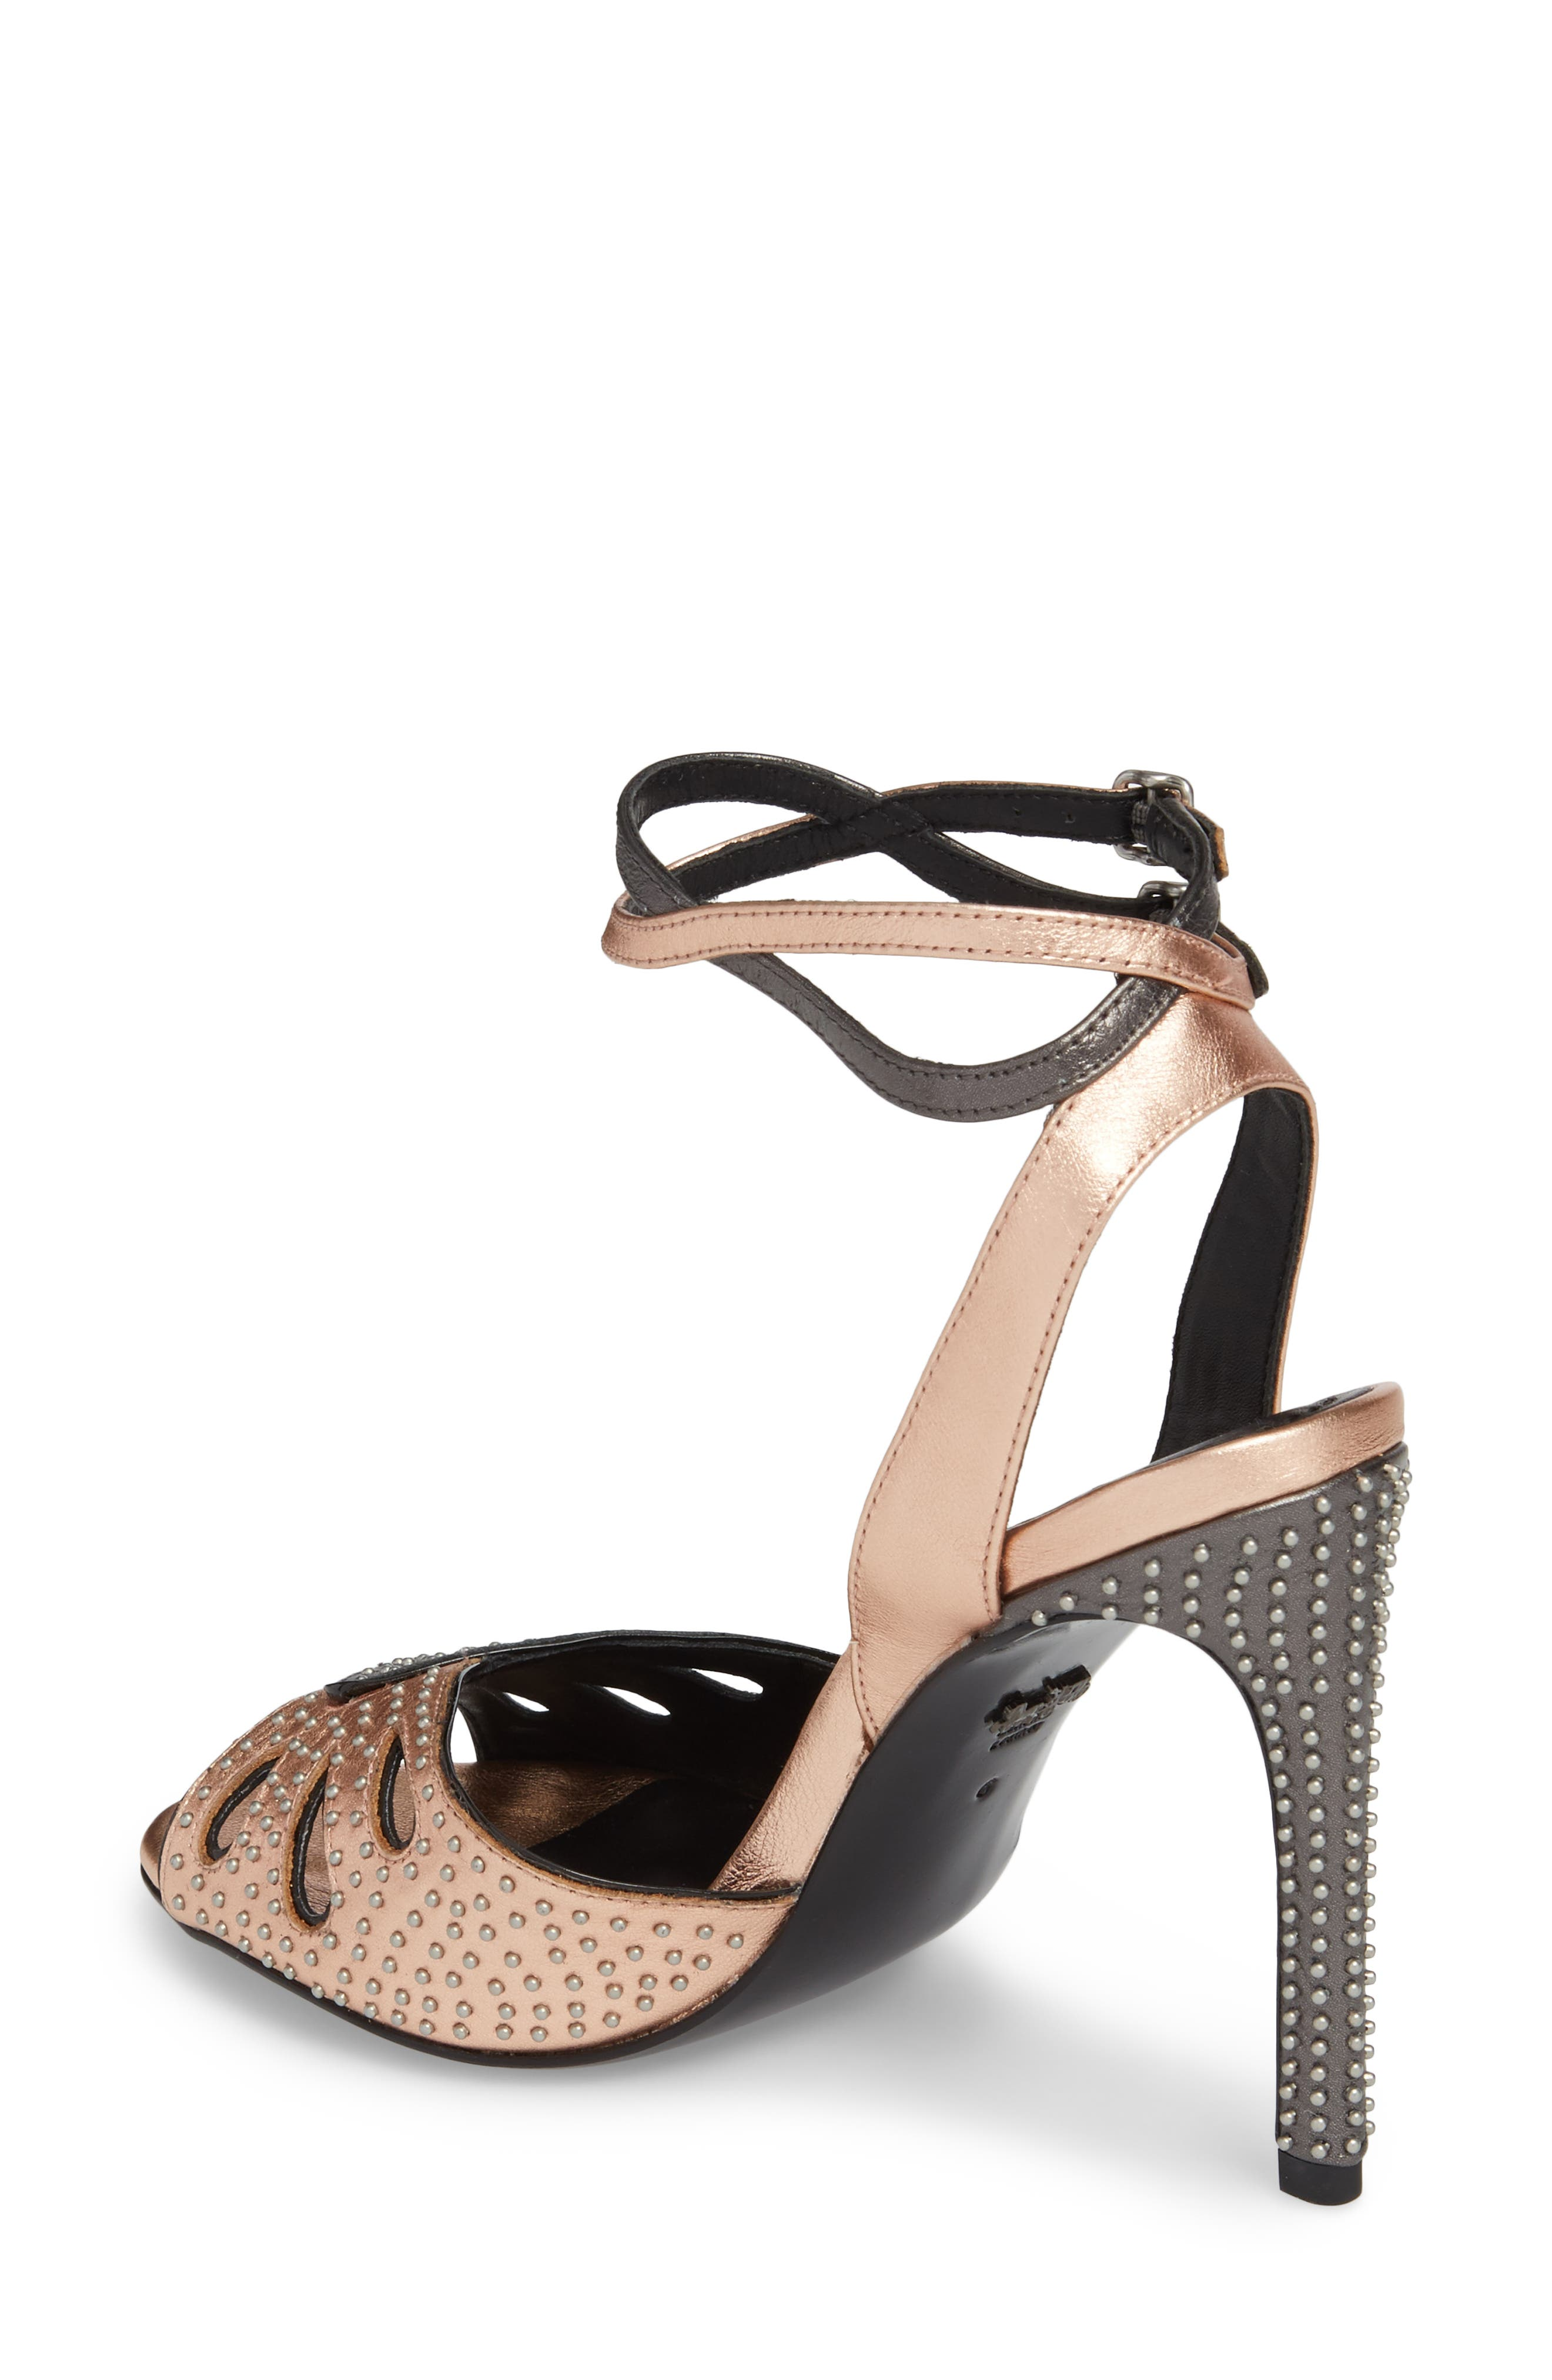 Prairie Rivet Sandal,                             Alternate thumbnail 2, color,                             Rose Gold/ Gunmetal